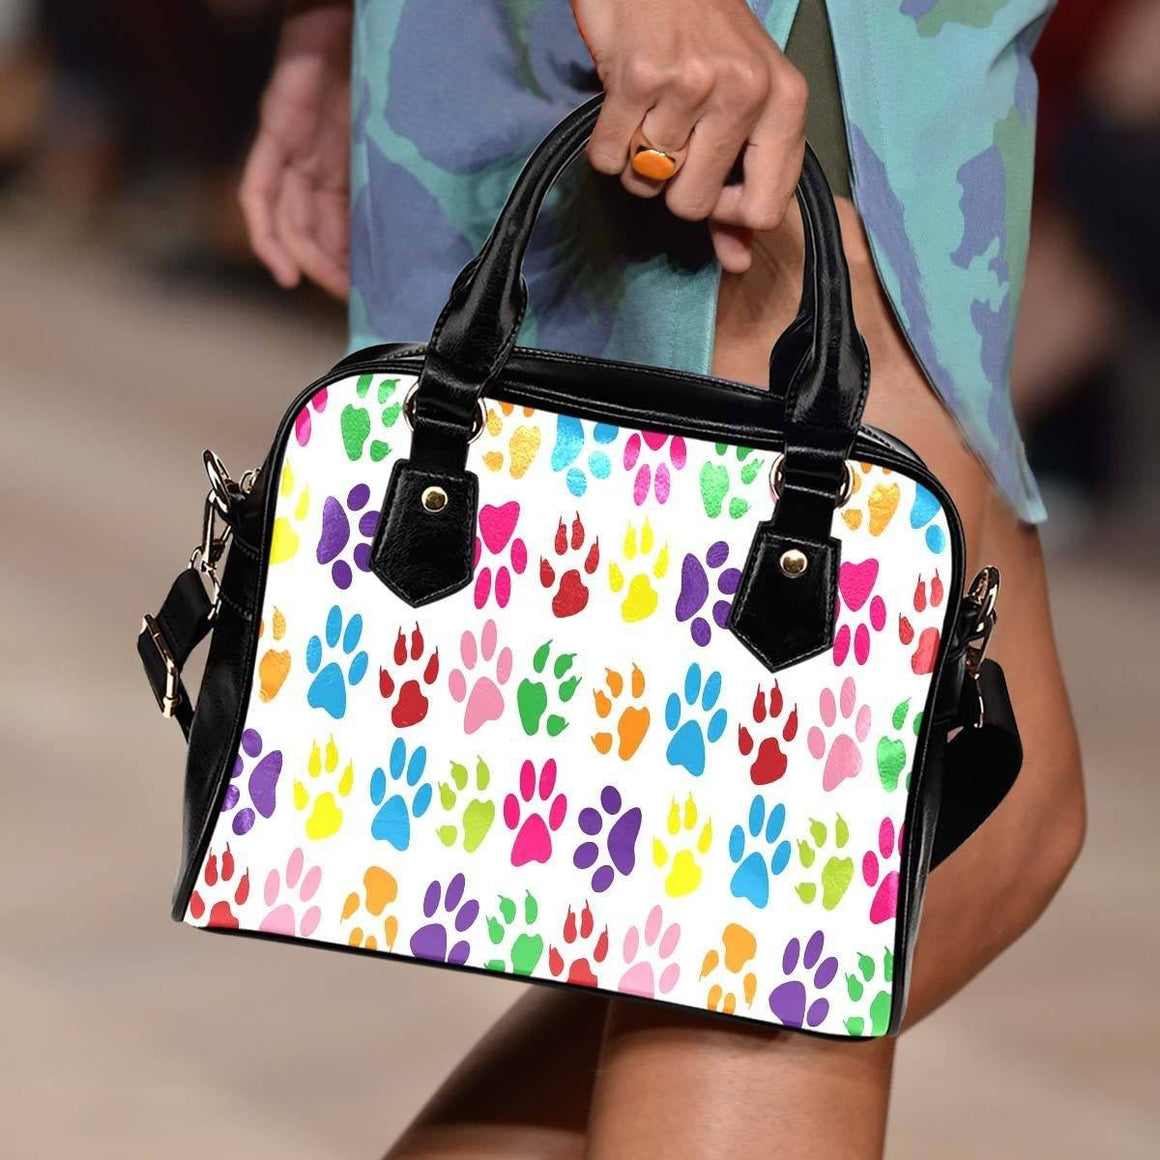 Dog Paw Shoulder Bag - ONLINEPRESALES